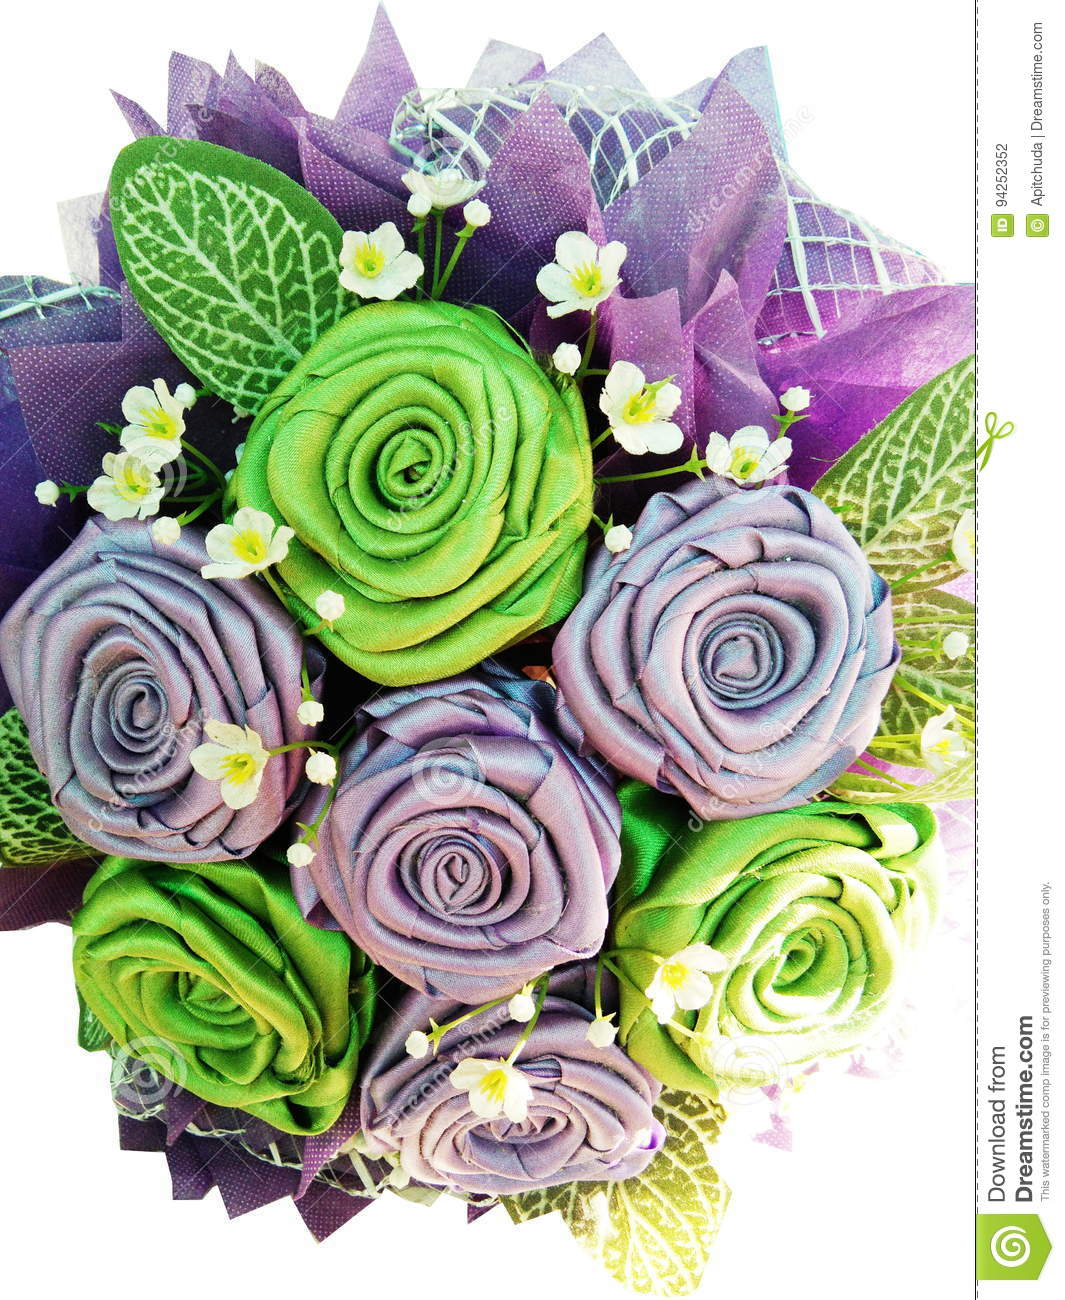 Silk flowers bouquet stock photo image of beauty fake 94252352 download silk flowers bouquet stock photo image of beauty fake 94252352 mightylinksfo